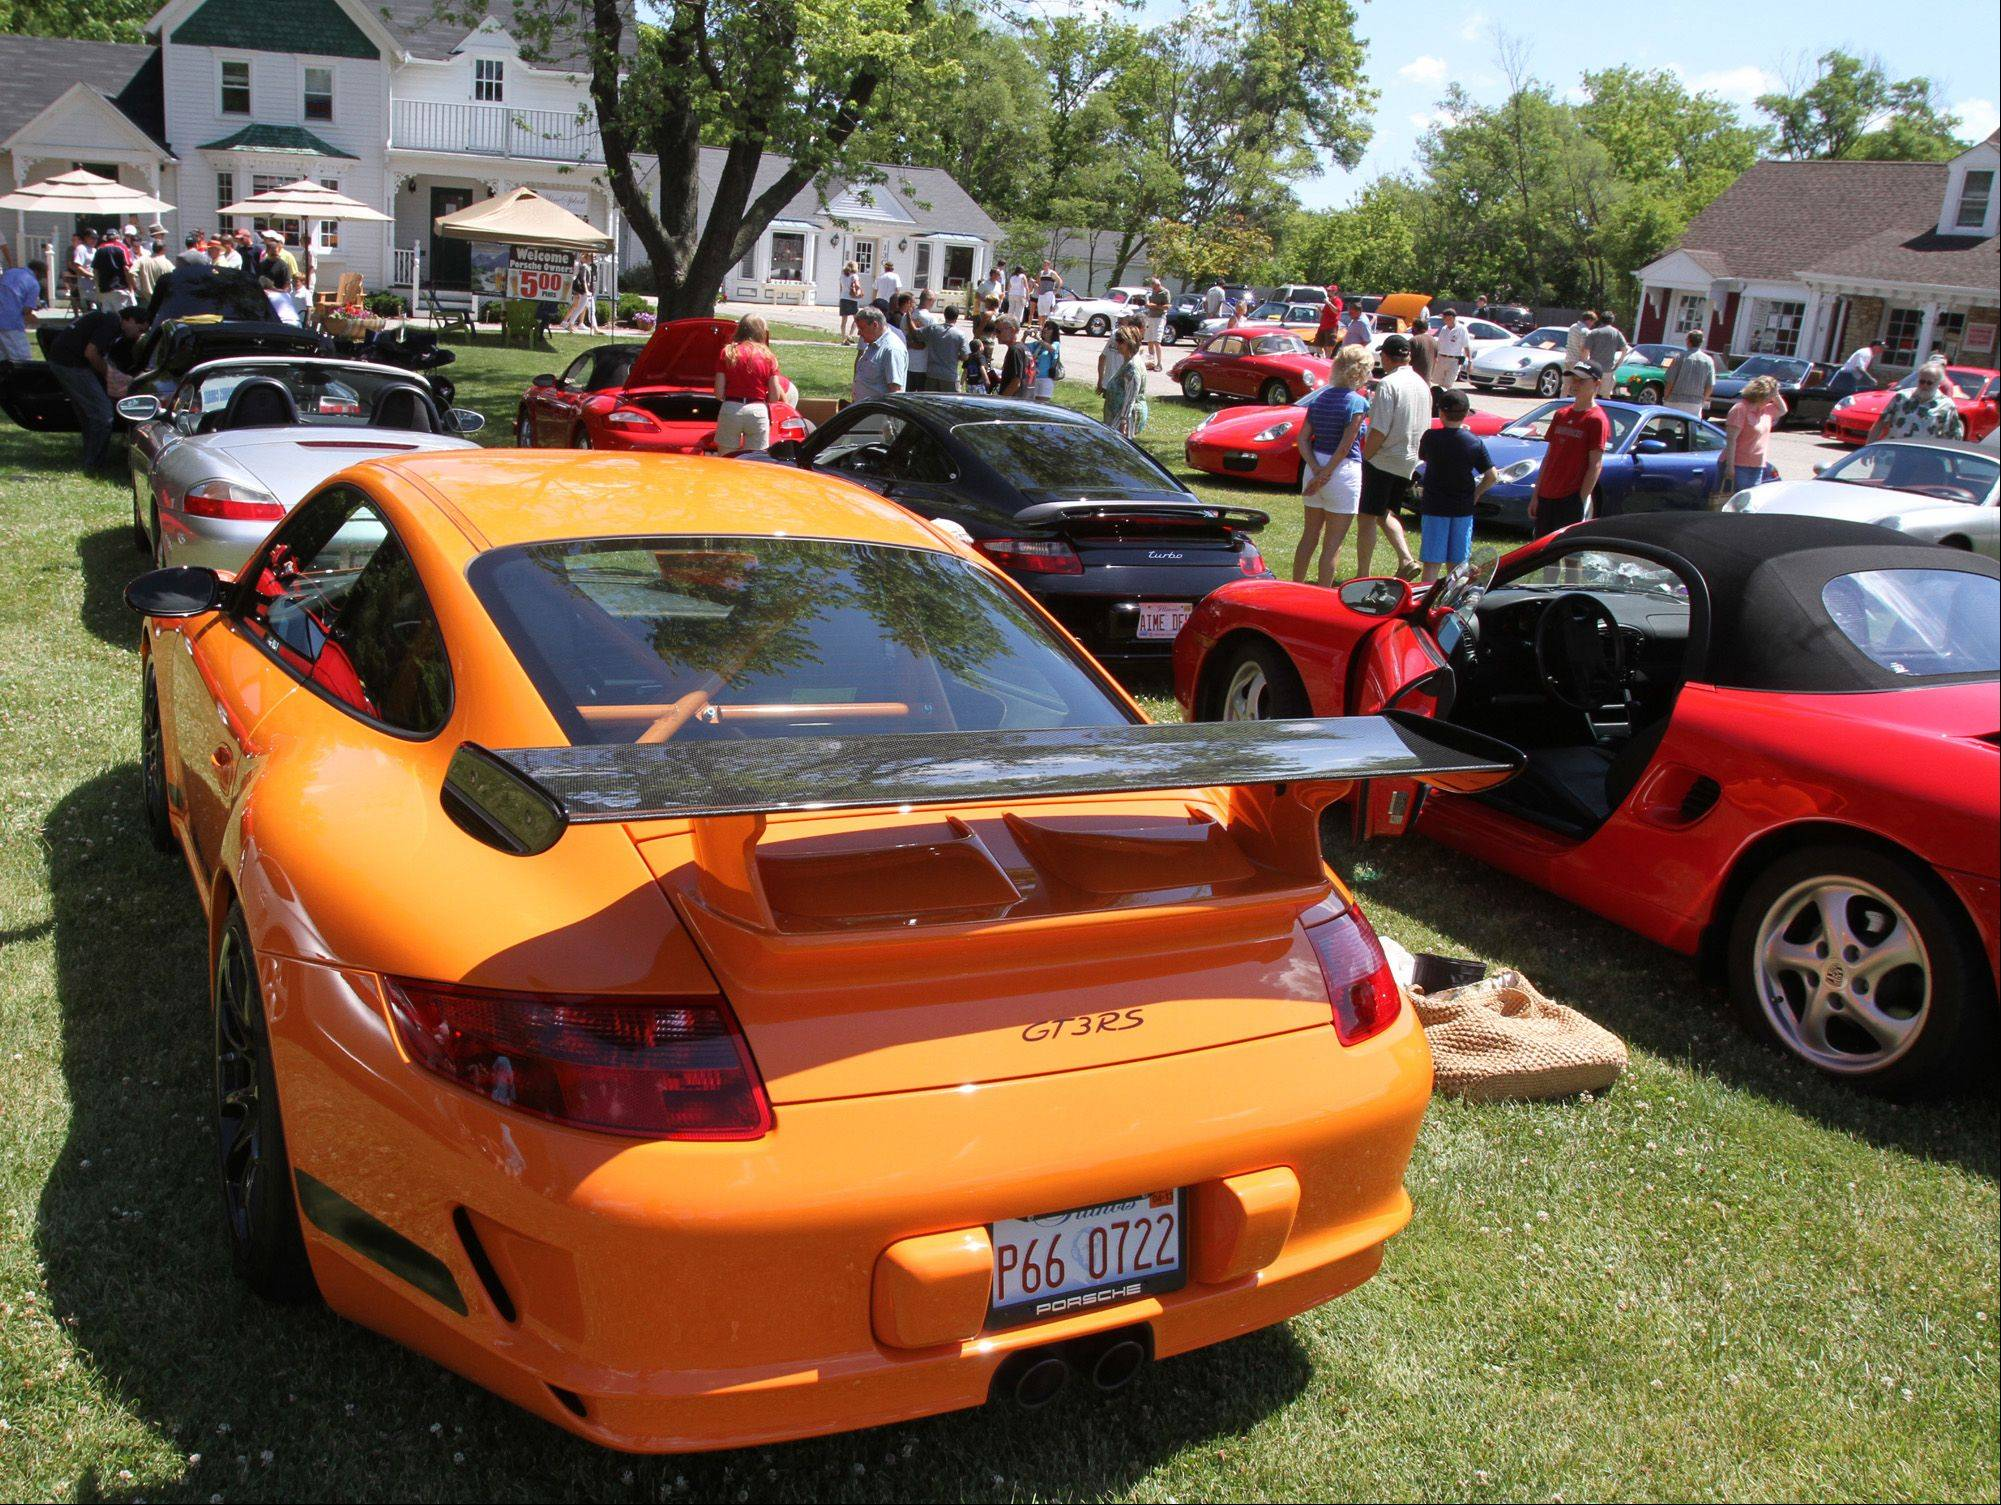 The annual Porsche Club Concours returns to Long Grove Sunday.